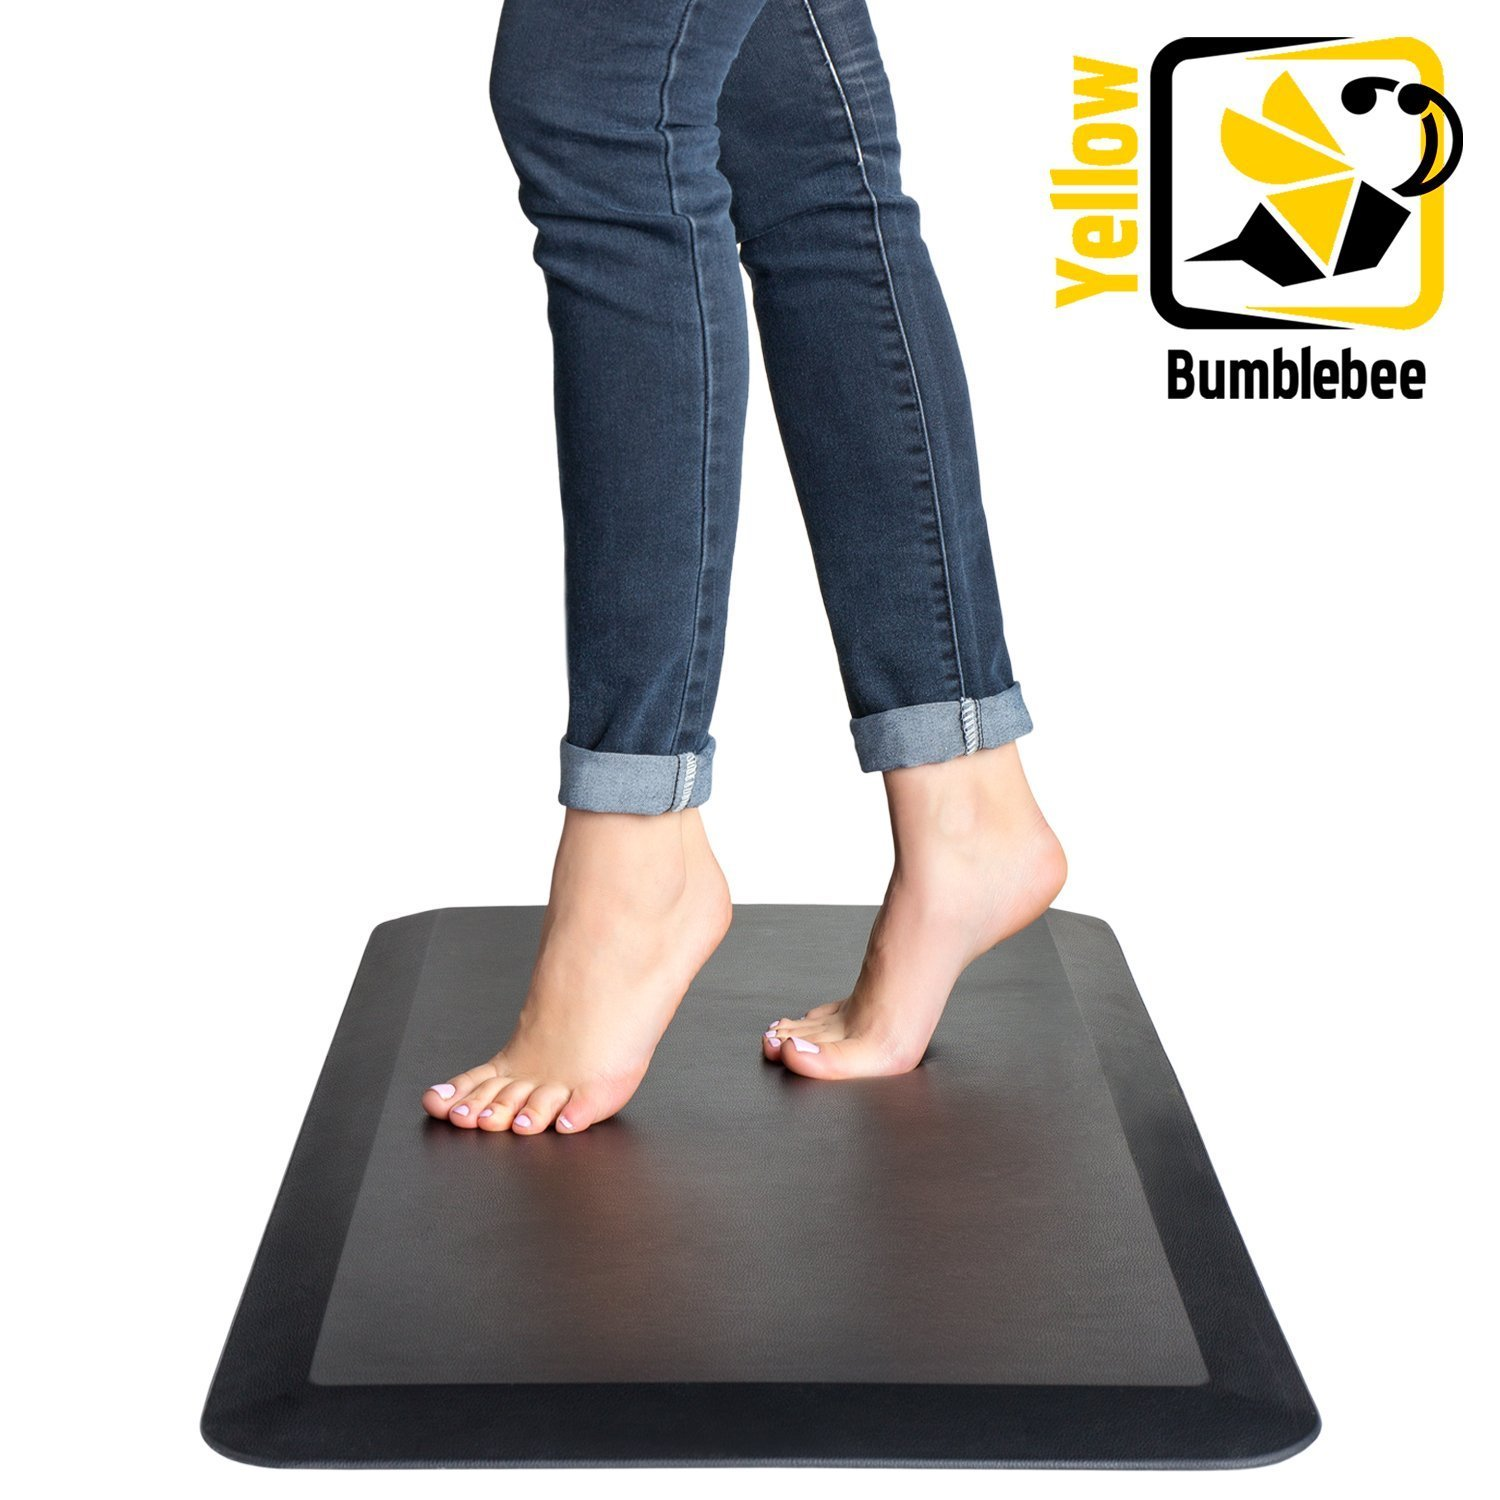 Anti Fatigue Comfort Mat - Yellow Bumblebee - Standing Desk Mat 20 x 39 x 3/4'', Ergonomically Engineered - Perfect for Kitchen, Bathroom, Offices and Workstations, Non-Toxic, Waterproof, (Black)